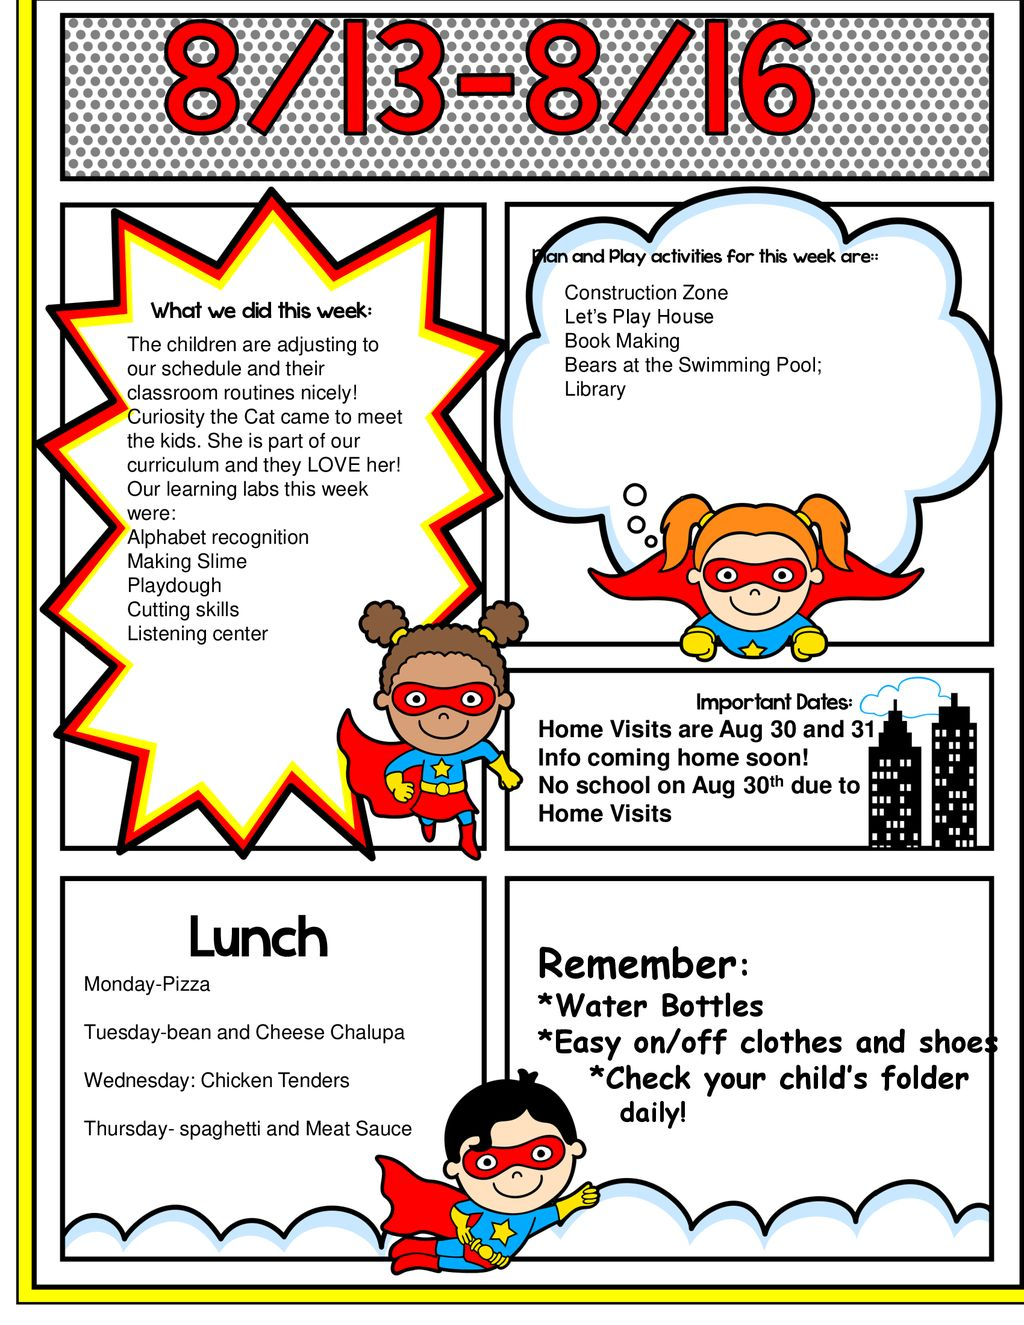 Action Folder Van Deze Week Plan And Play Activities For This Week Are Ppt Download